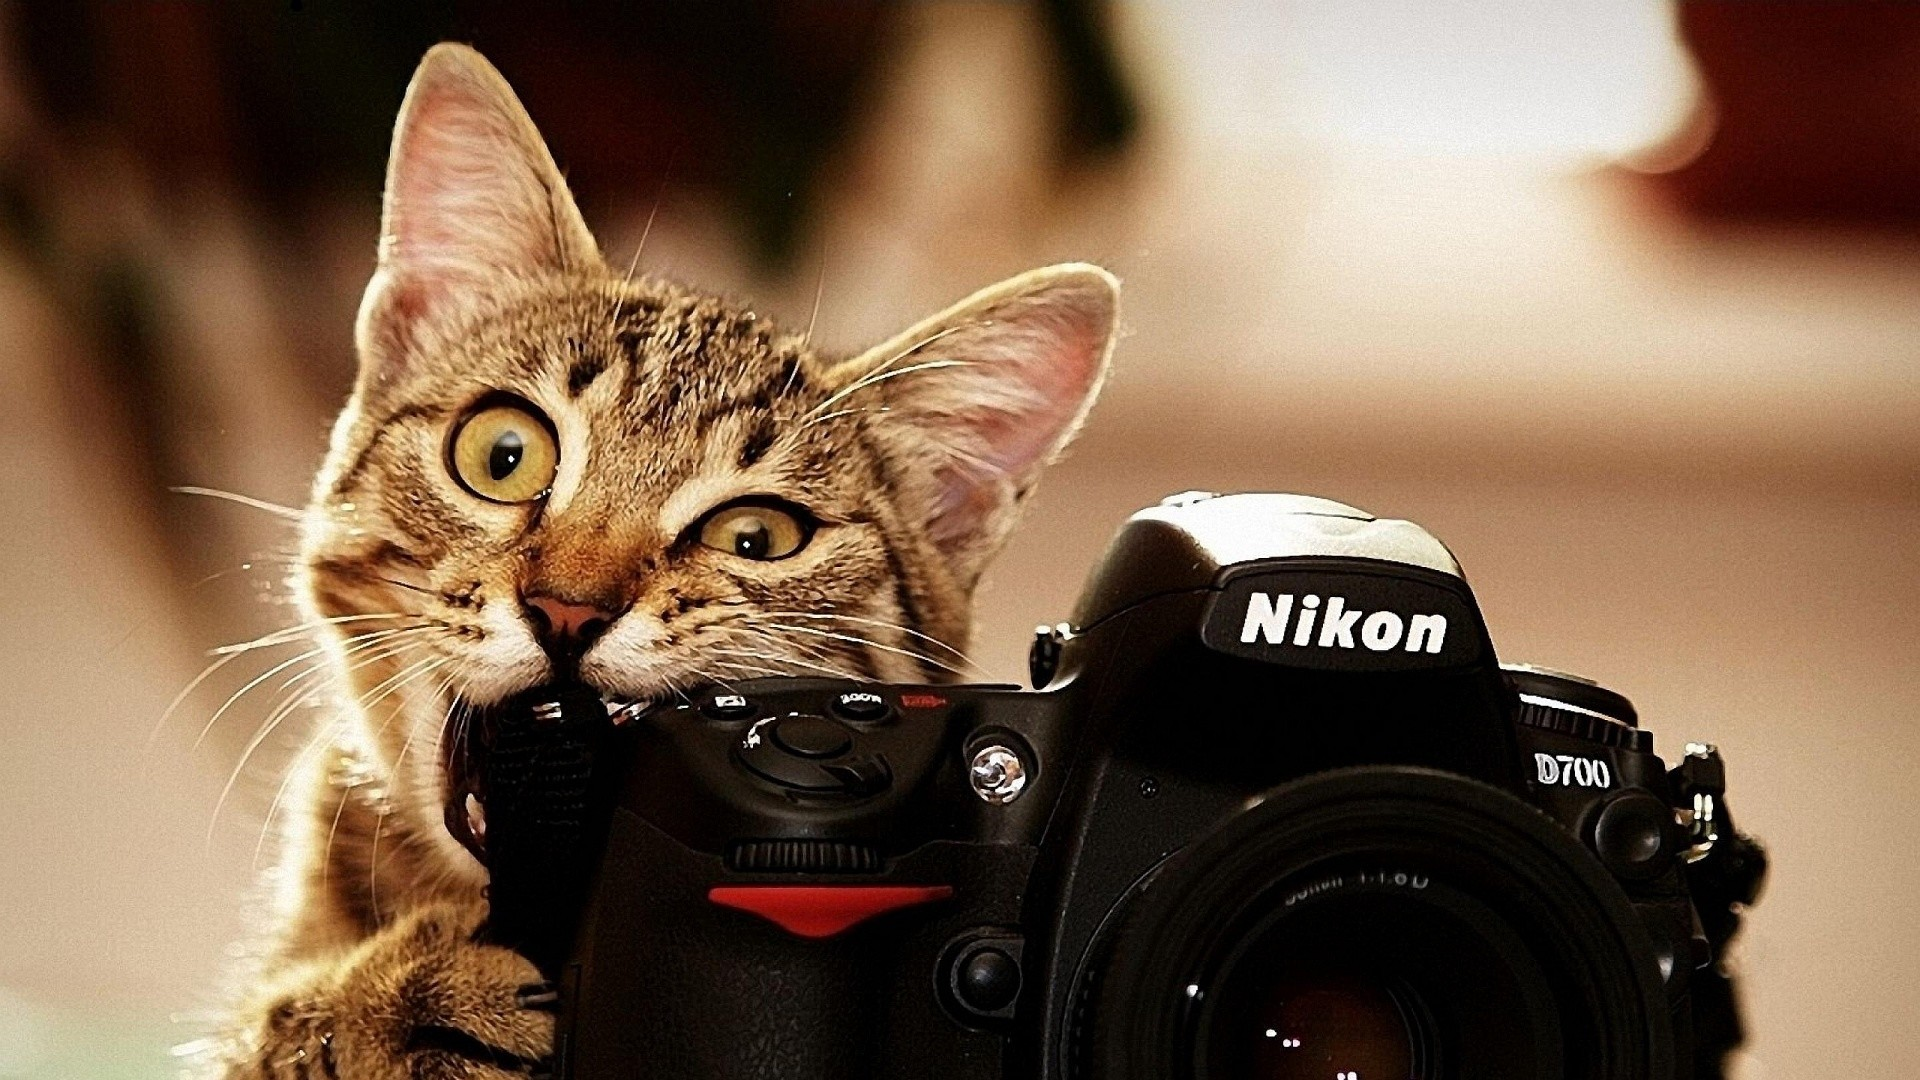 8. funny-wallpapers-hd9-600×338